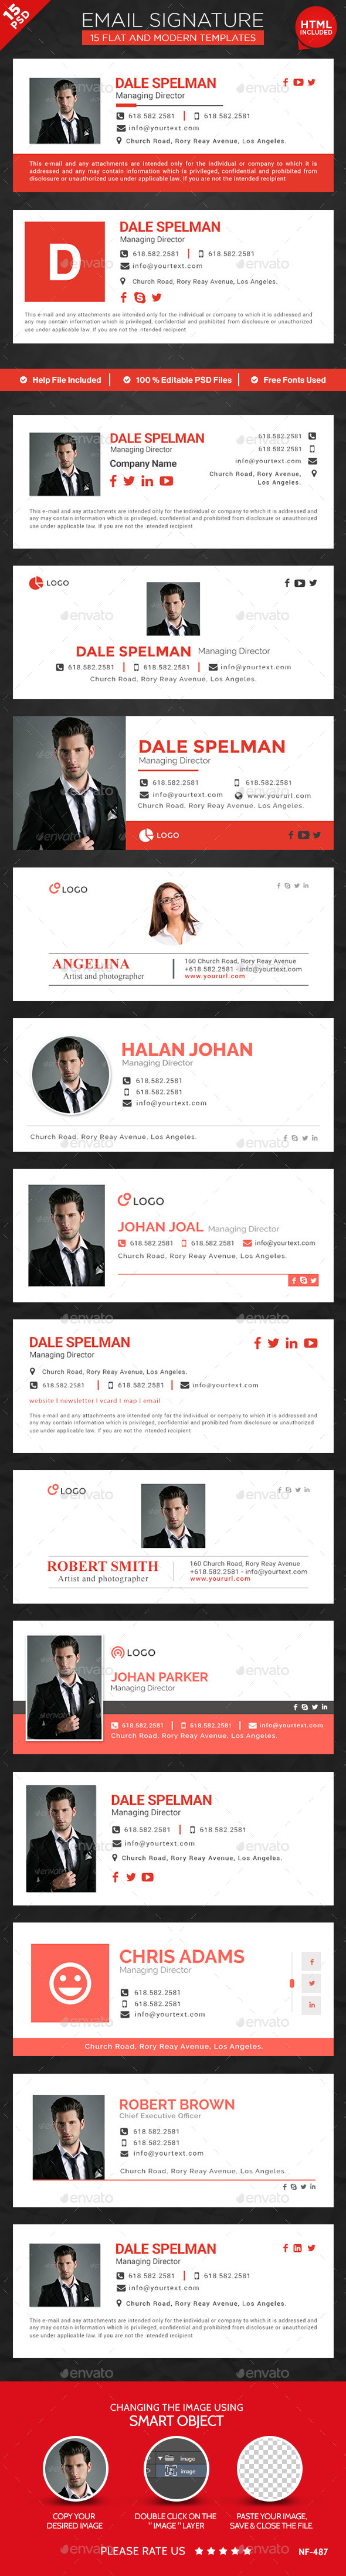 15 Email Signature Templates HTML Files Included